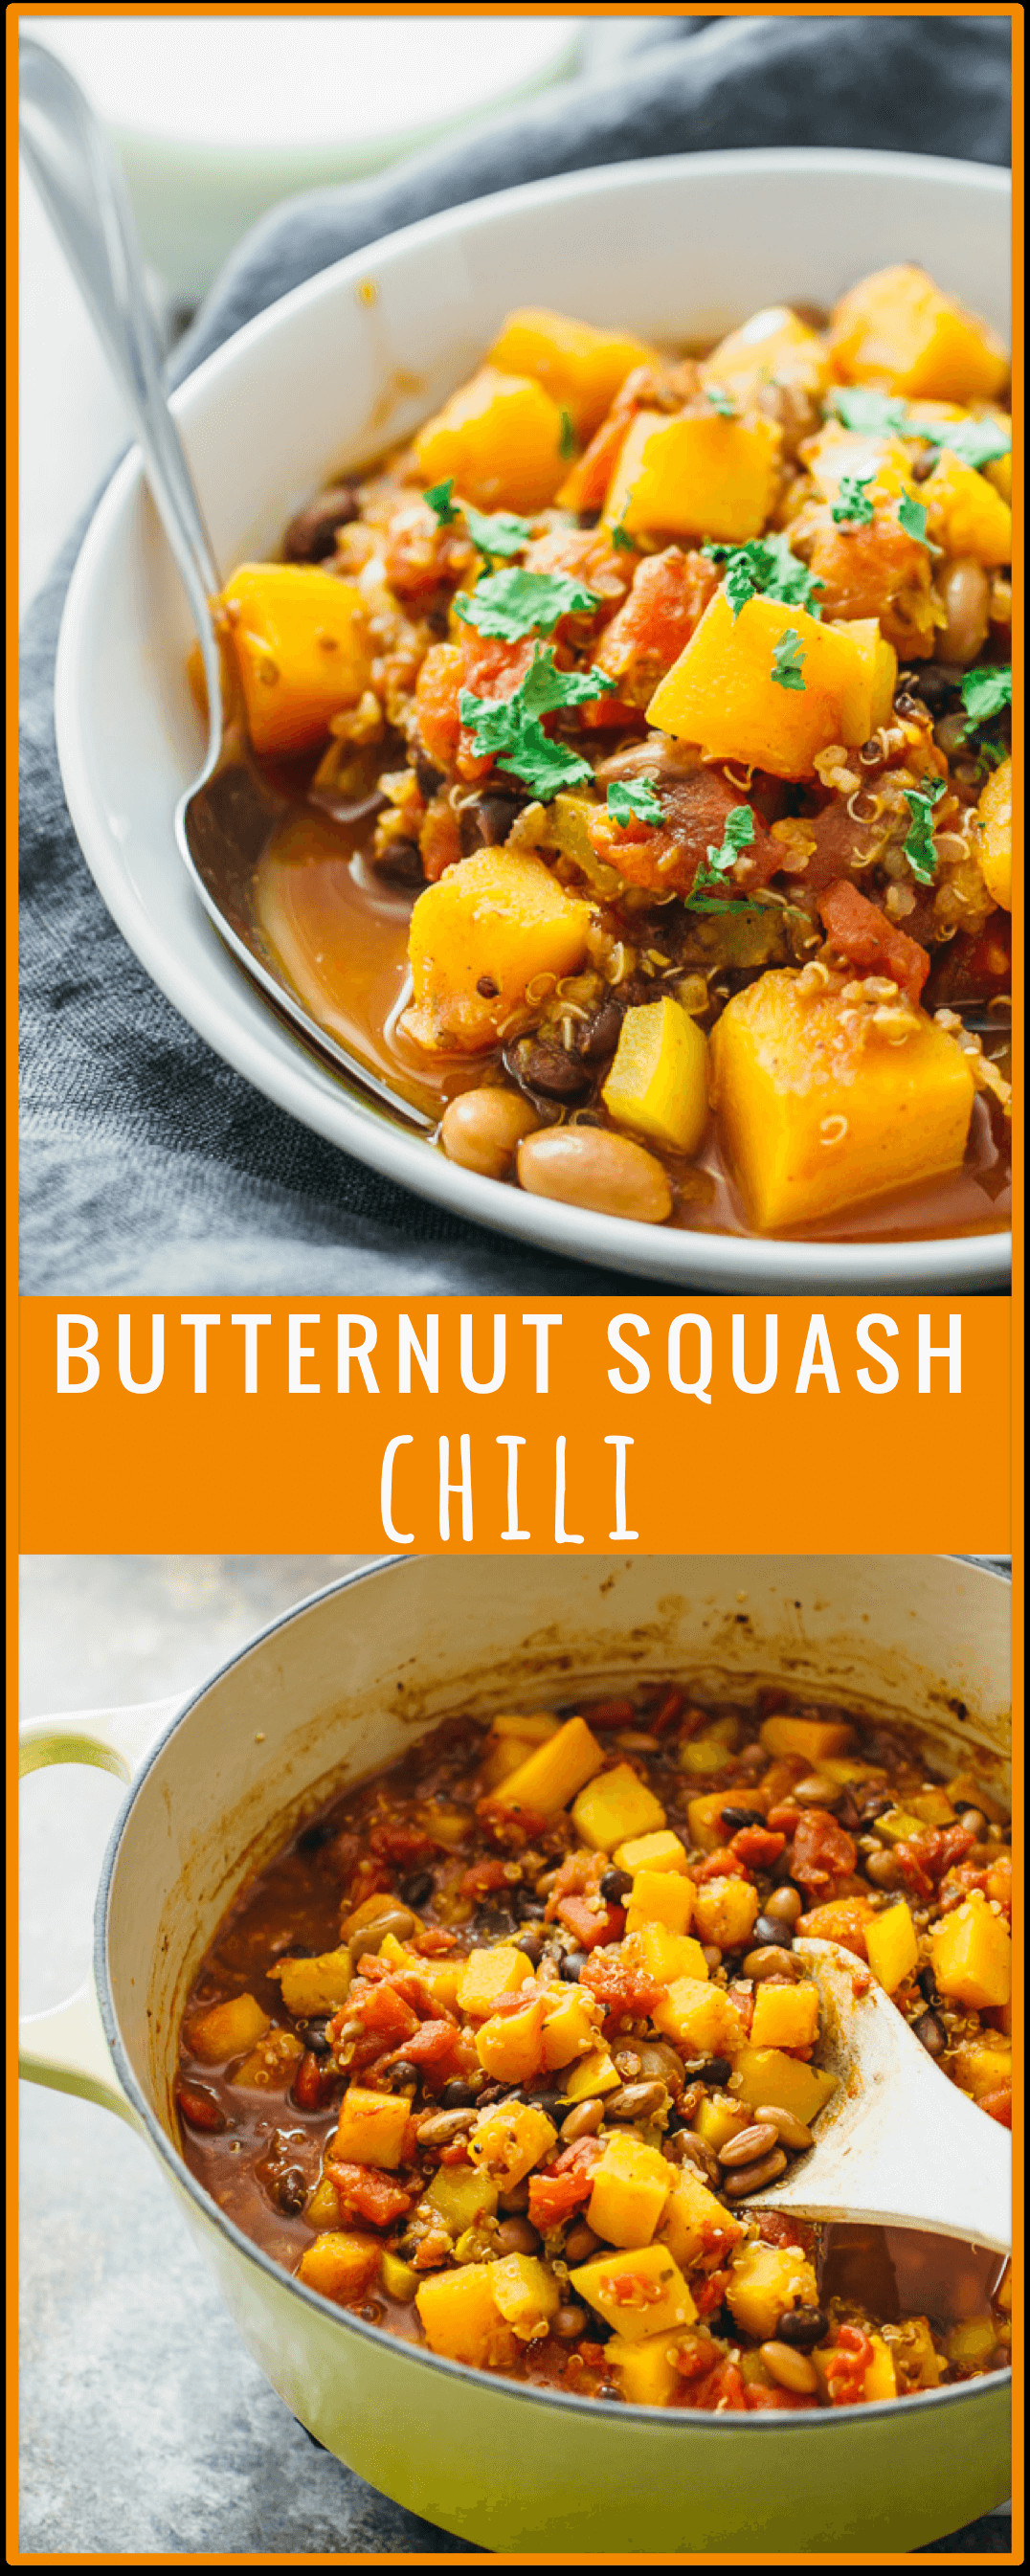 Butternut Squash Chili  Butternut squash chili savory tooth